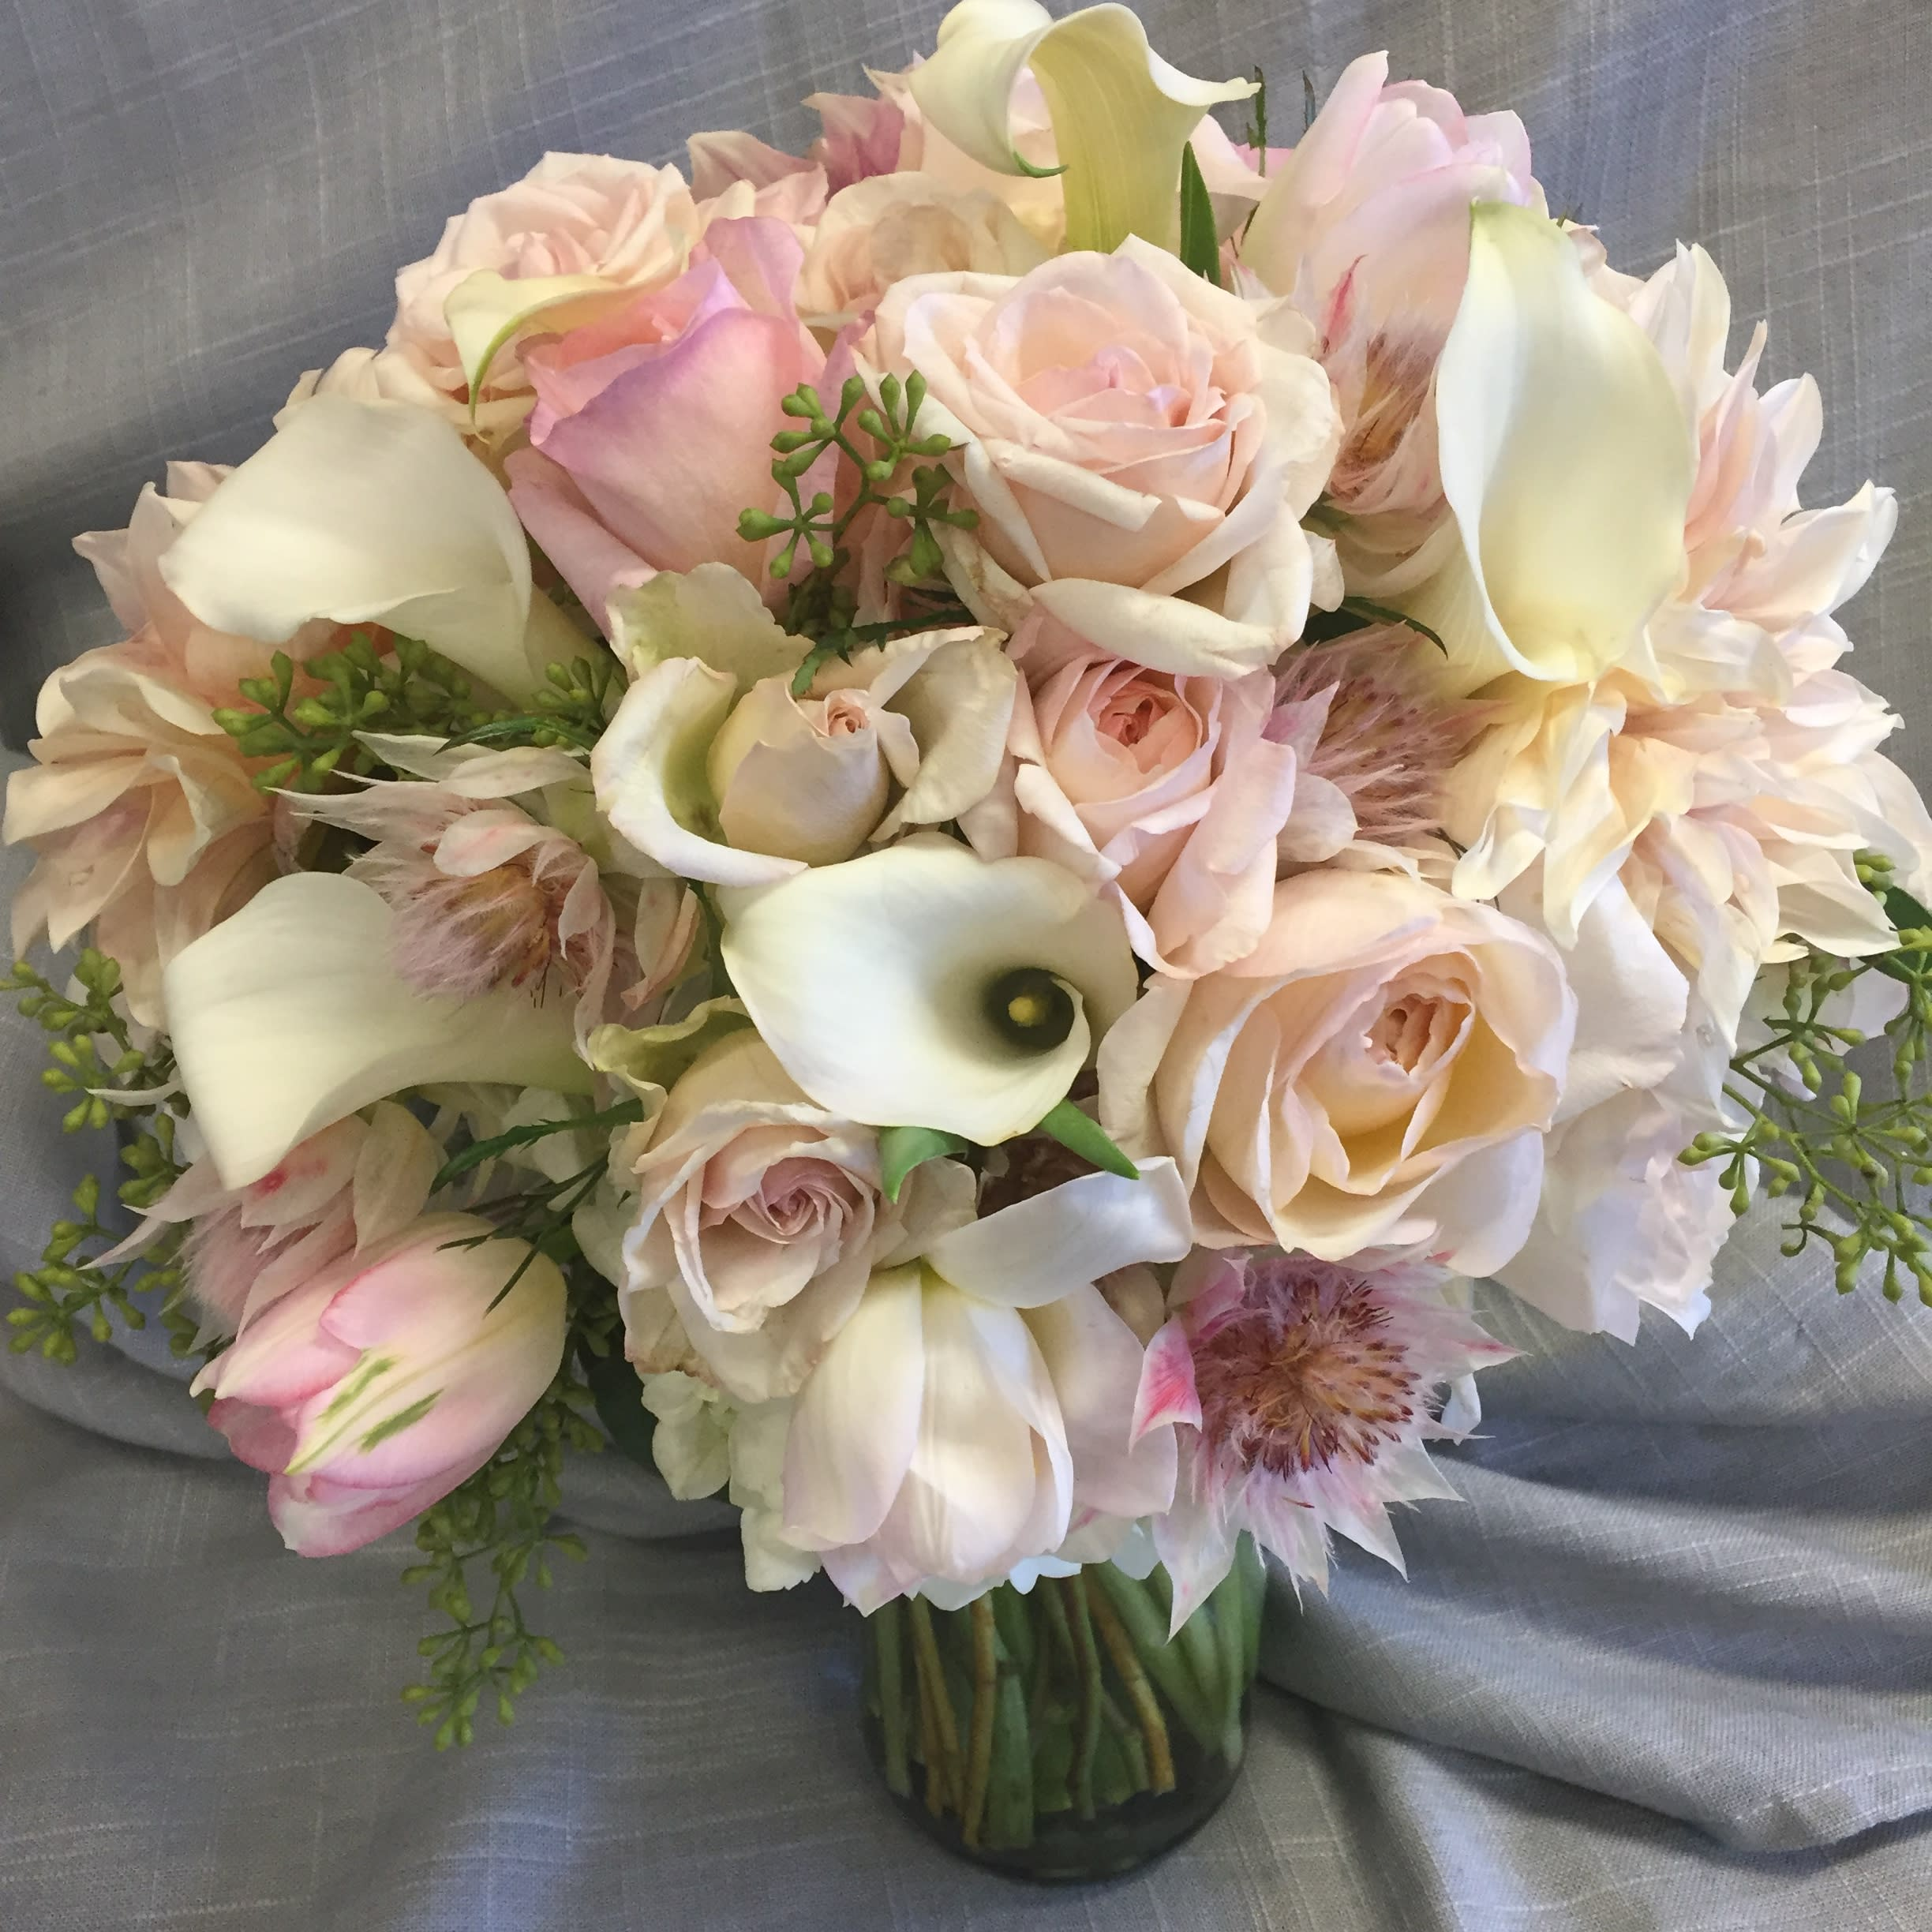 Pastel Wedding Flowers: Soft Pastel Wedding Bouquet In Concord, CA